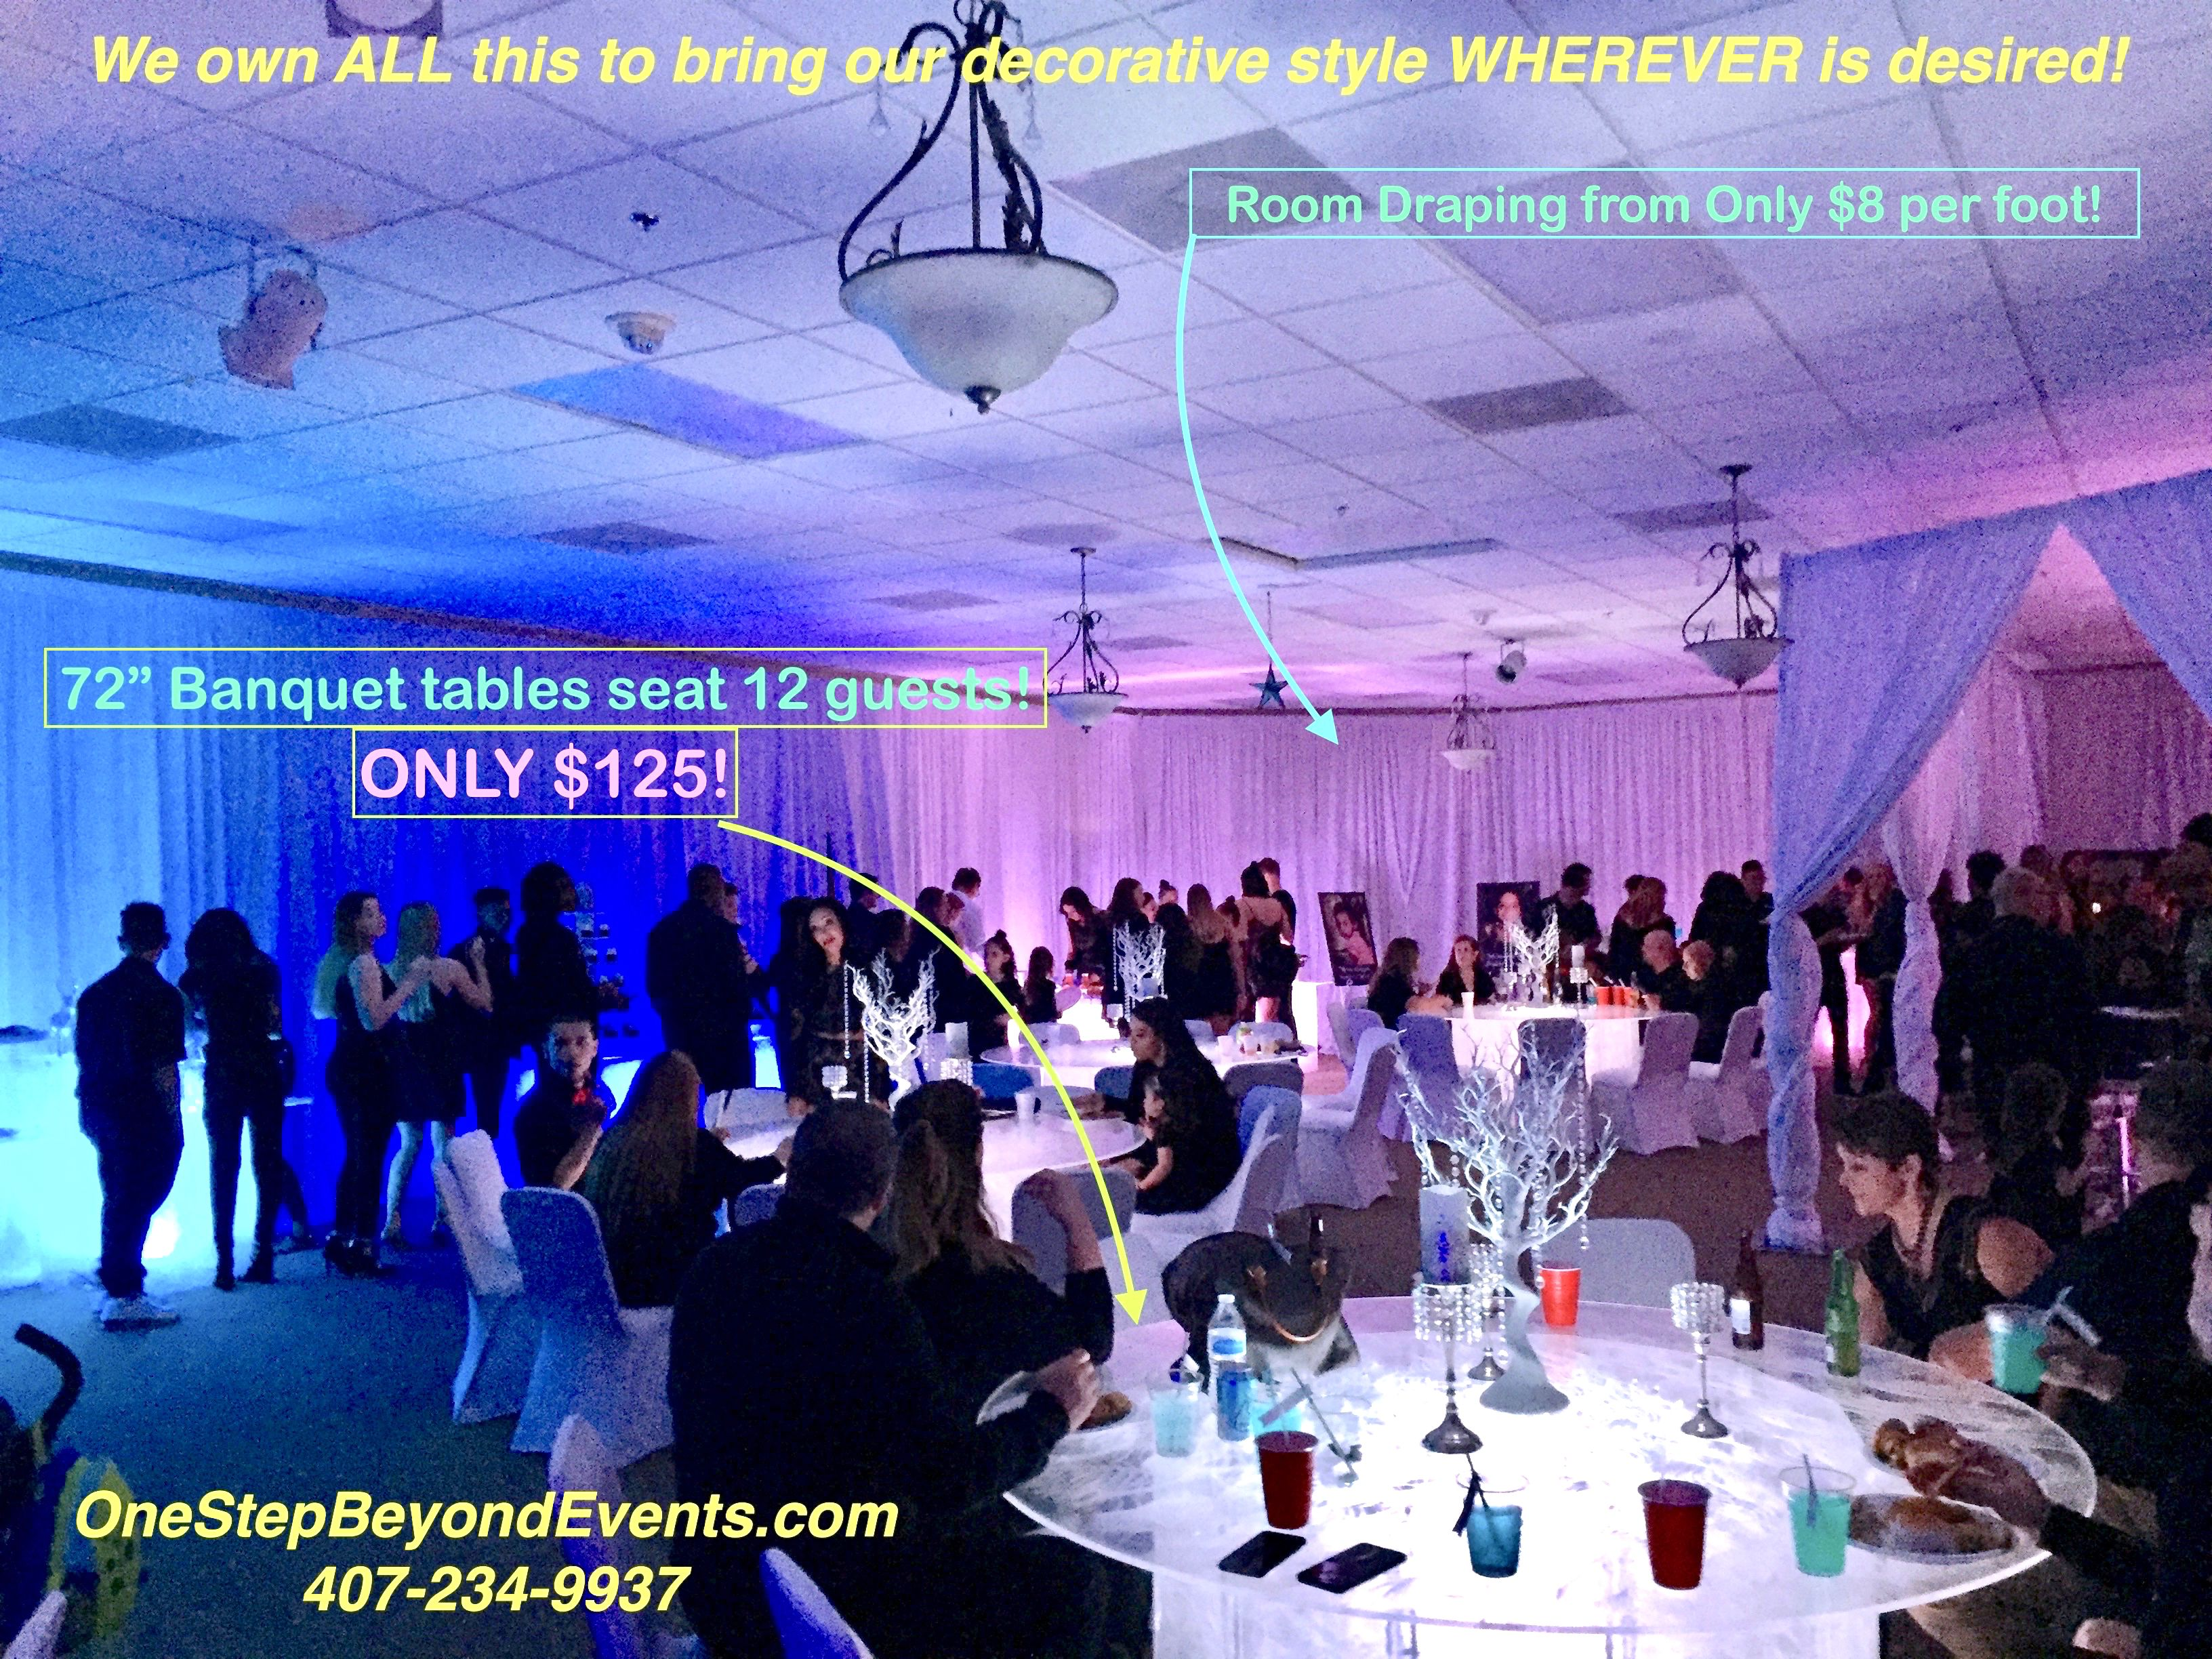 Affordable Party Rental Ideas Glow Table Led Furniture Rentals South Beach Vegas Style Light Up Glow Decor 4 X4 C In 2020 Glow Table Party Rentals Event Rental